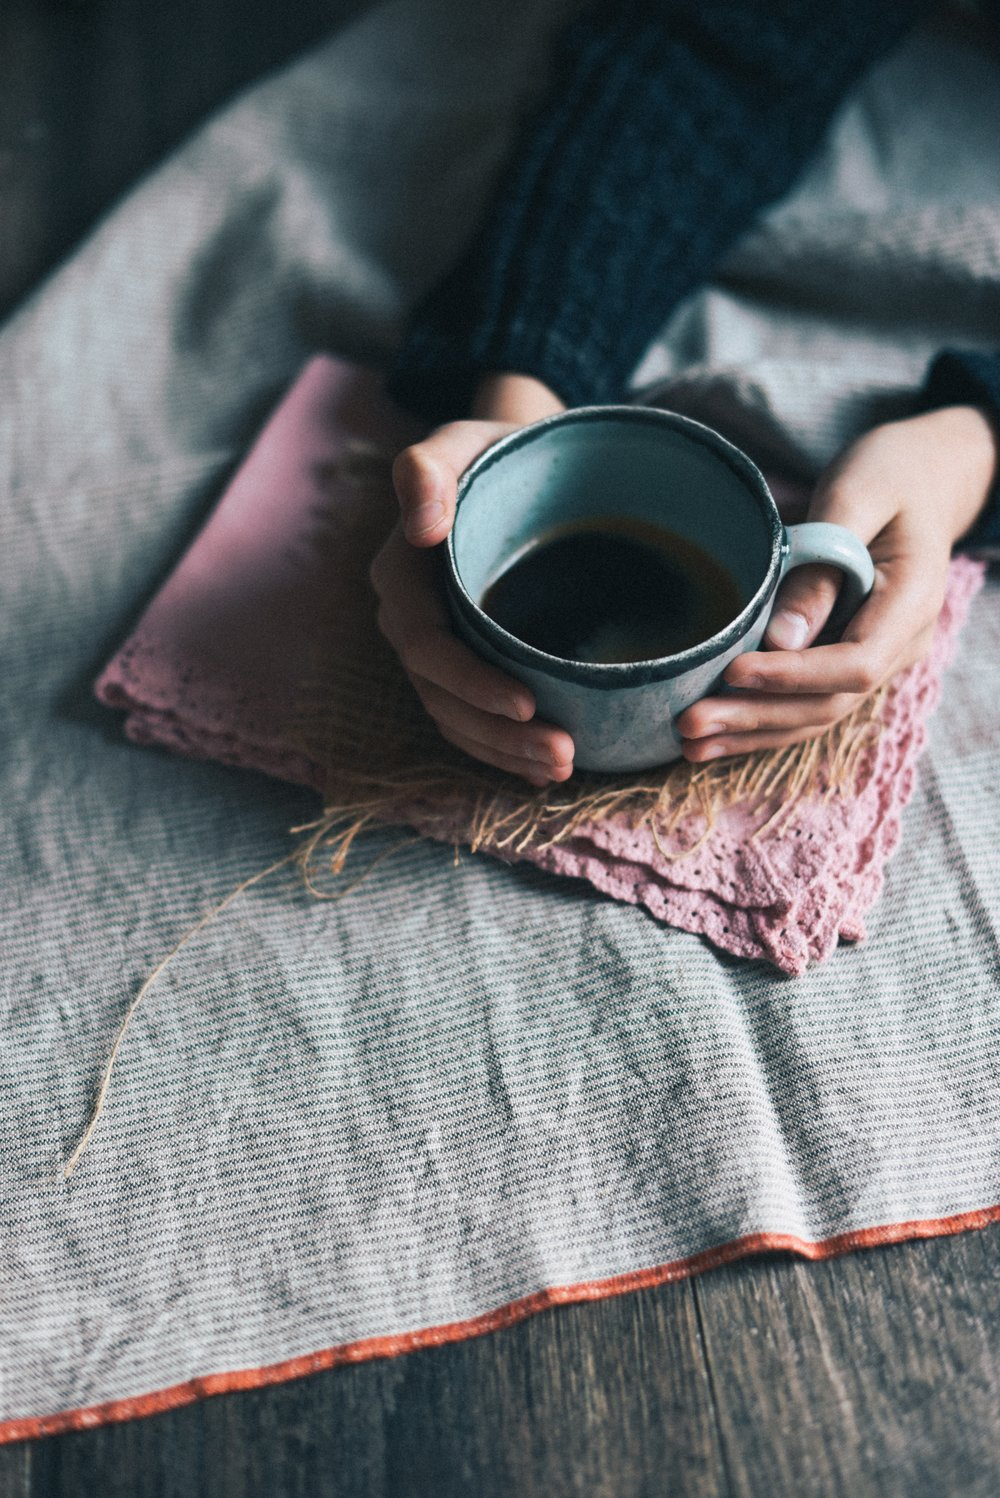 Research-backed Ways To Relax